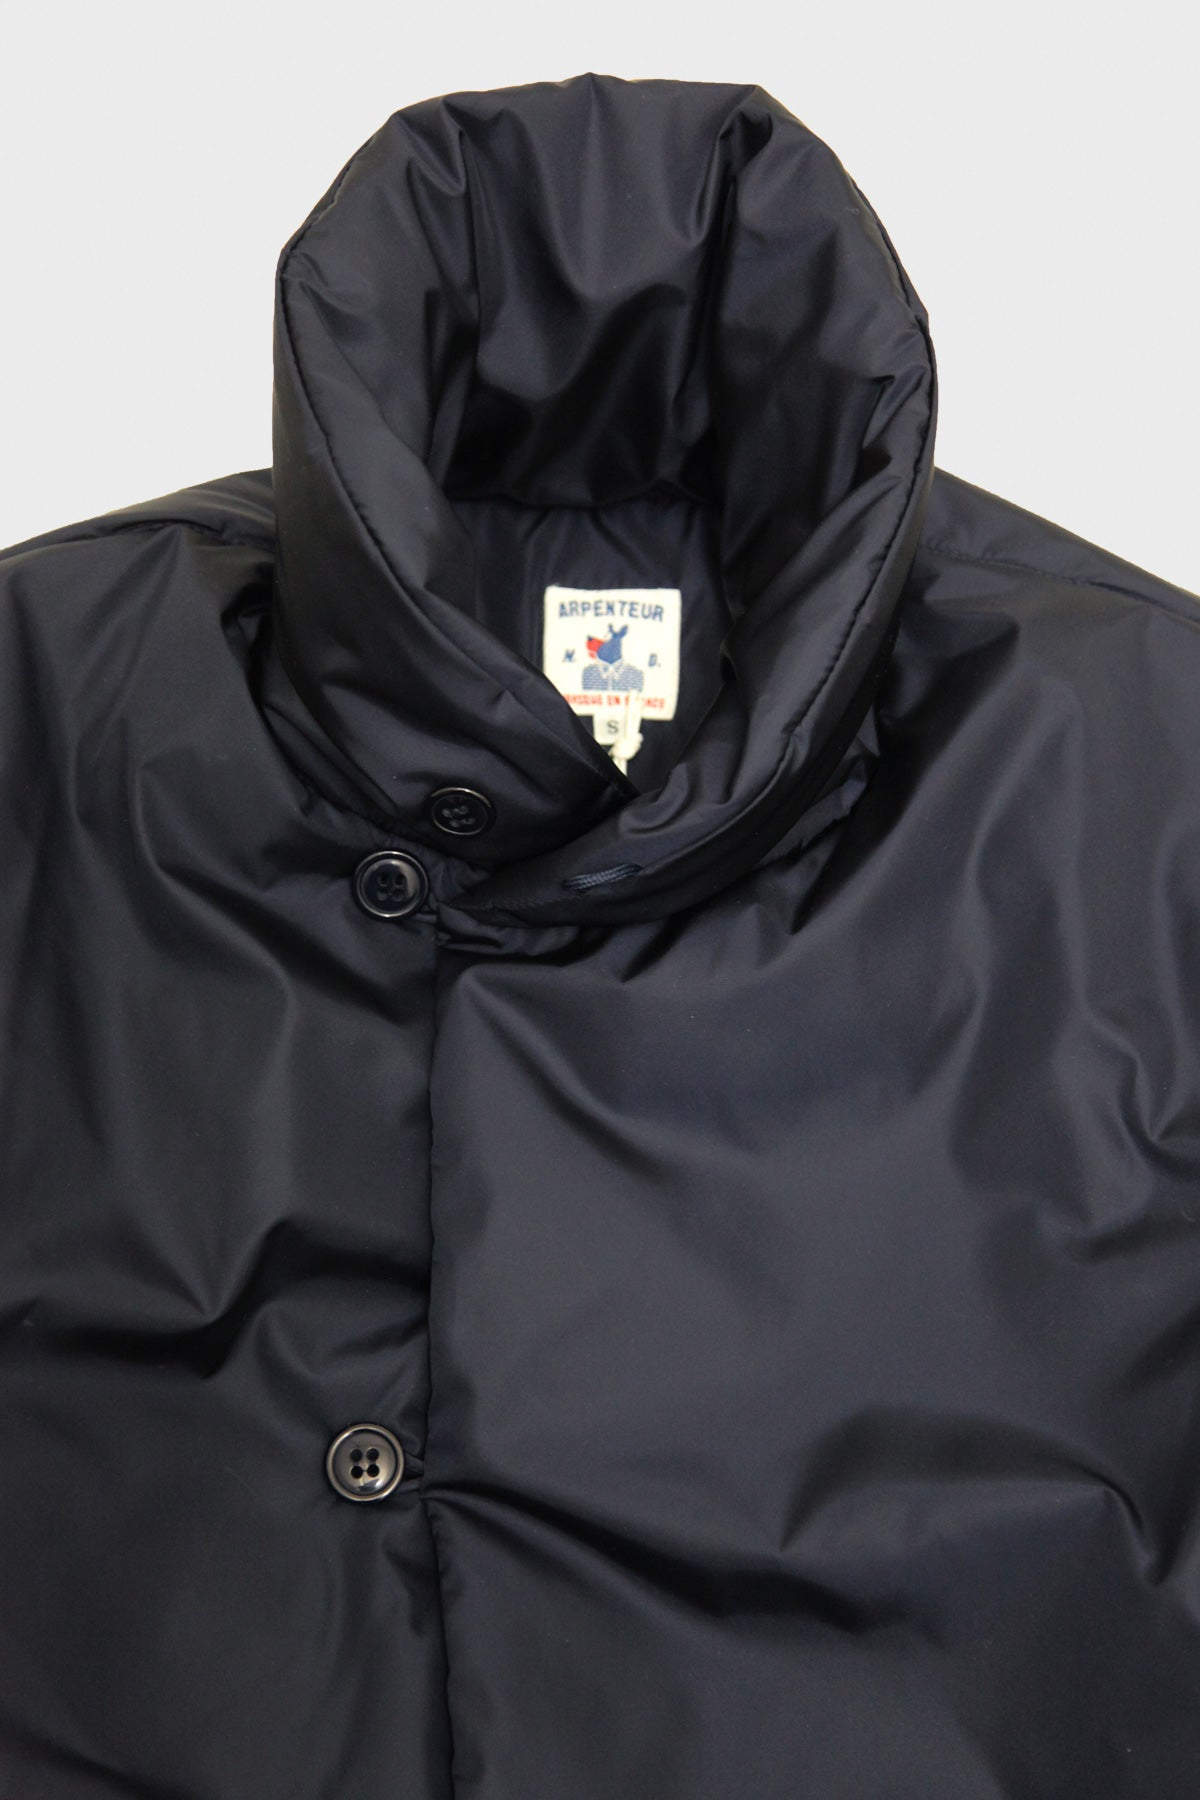 Arpenteur - Loft J. Jacket - HD Technical Nylon Primaloft Fill - Navy - Canoe Club